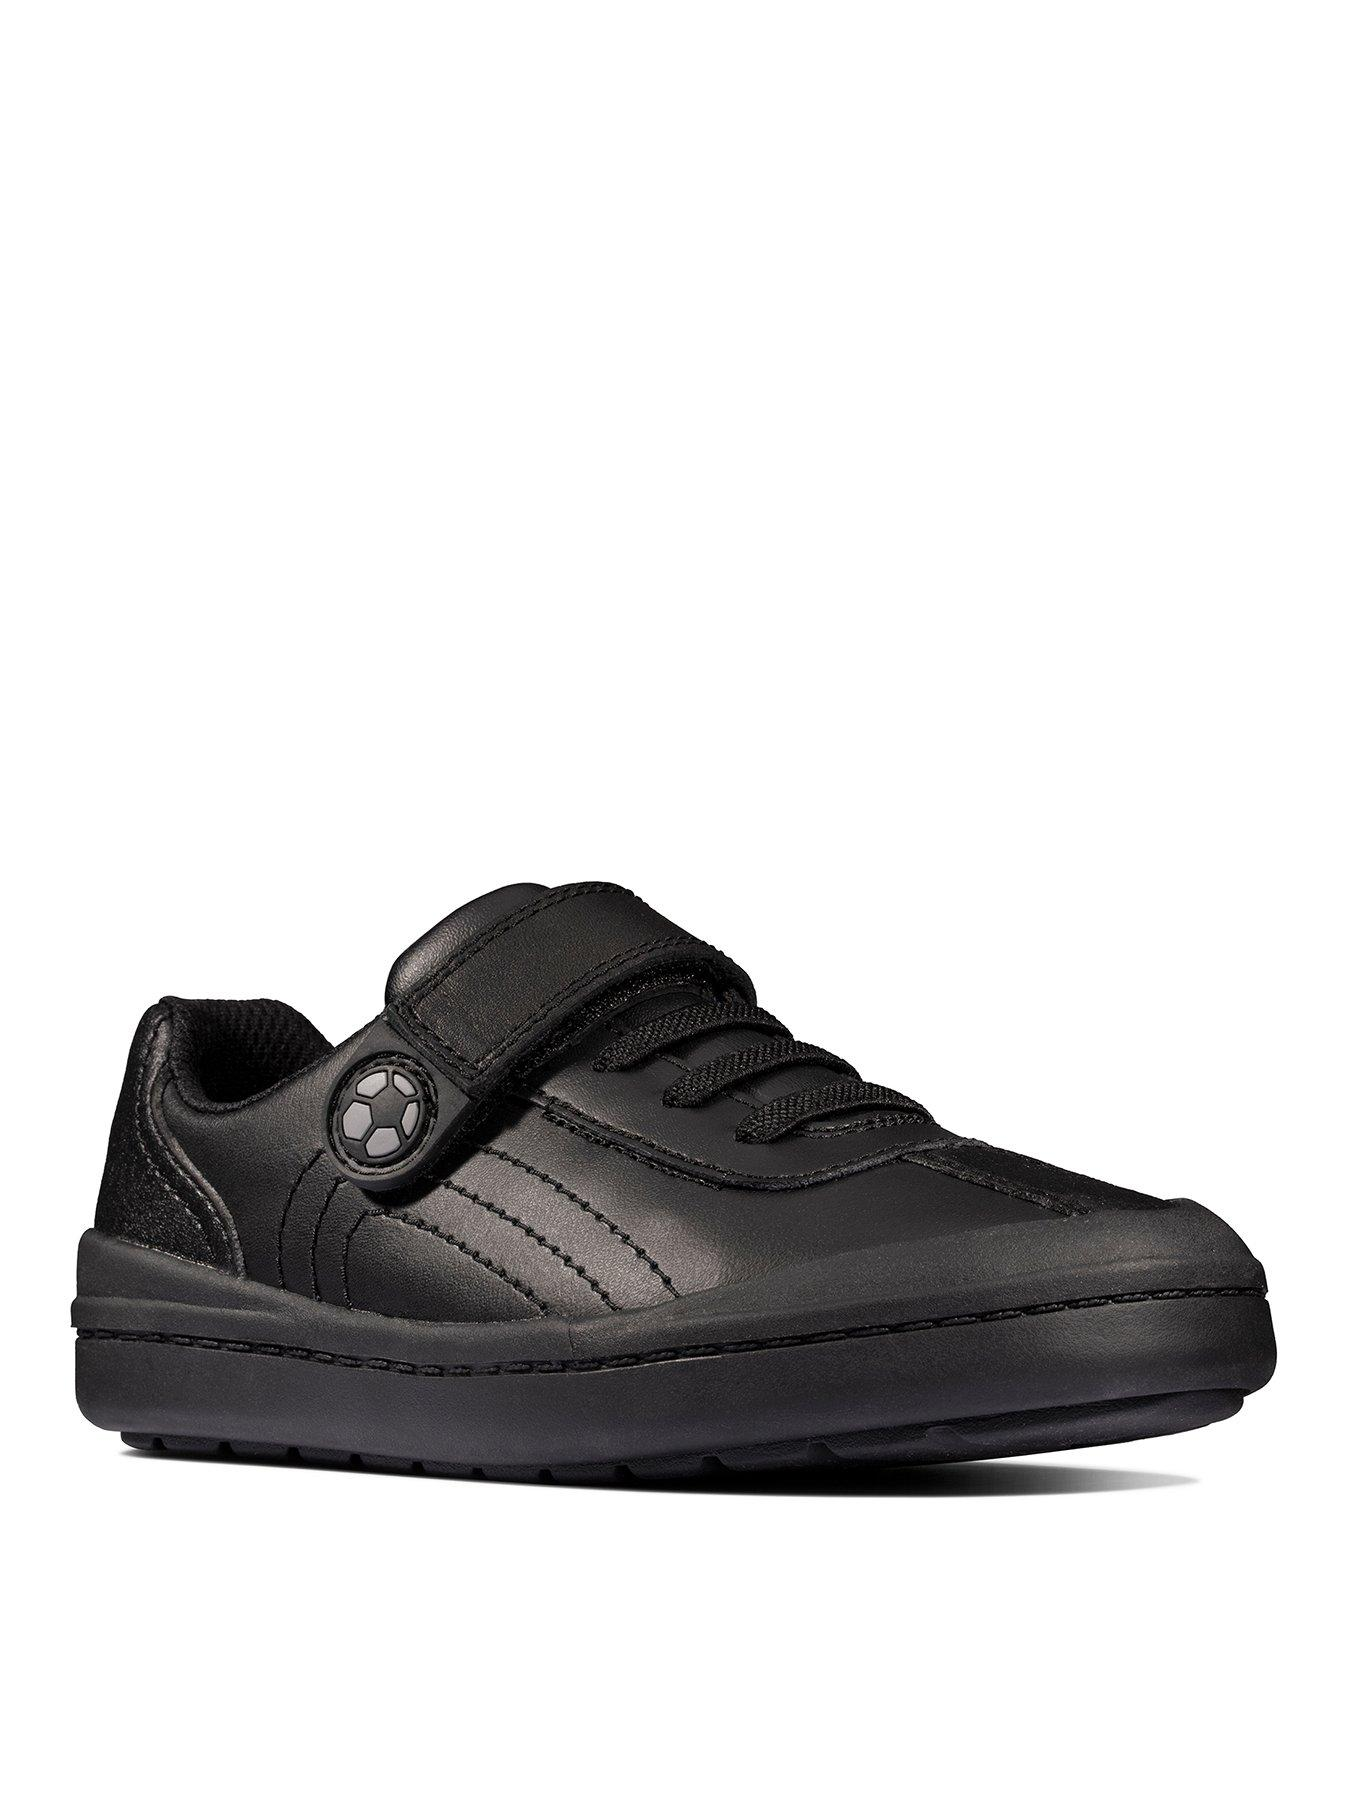 Clarks Rock Pass Toddler Black Leather Shoes SIZE-12 fit-F